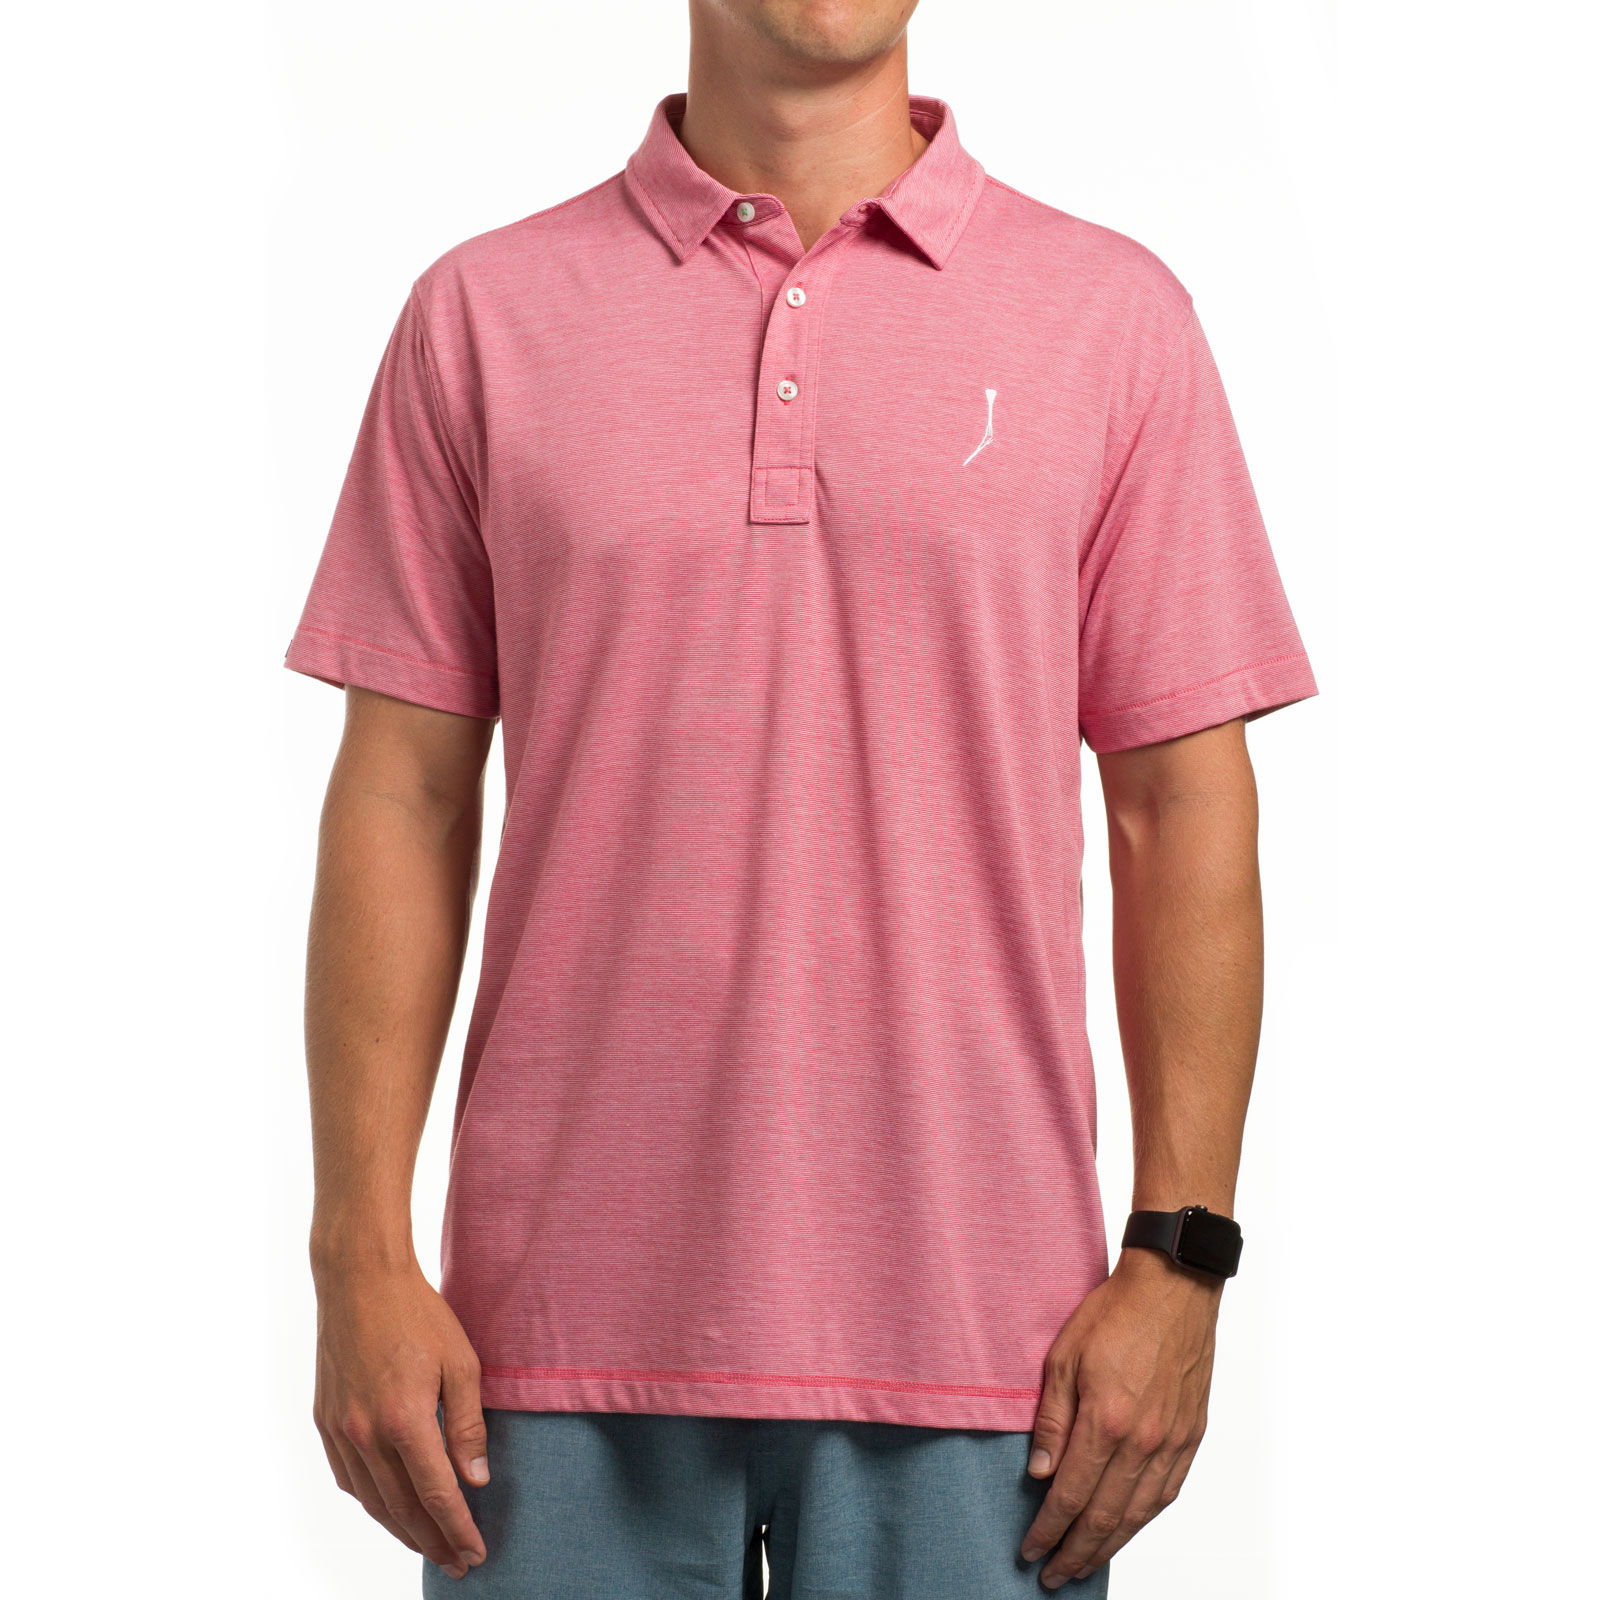 TGJ x Linksoul Men's Avila Polo